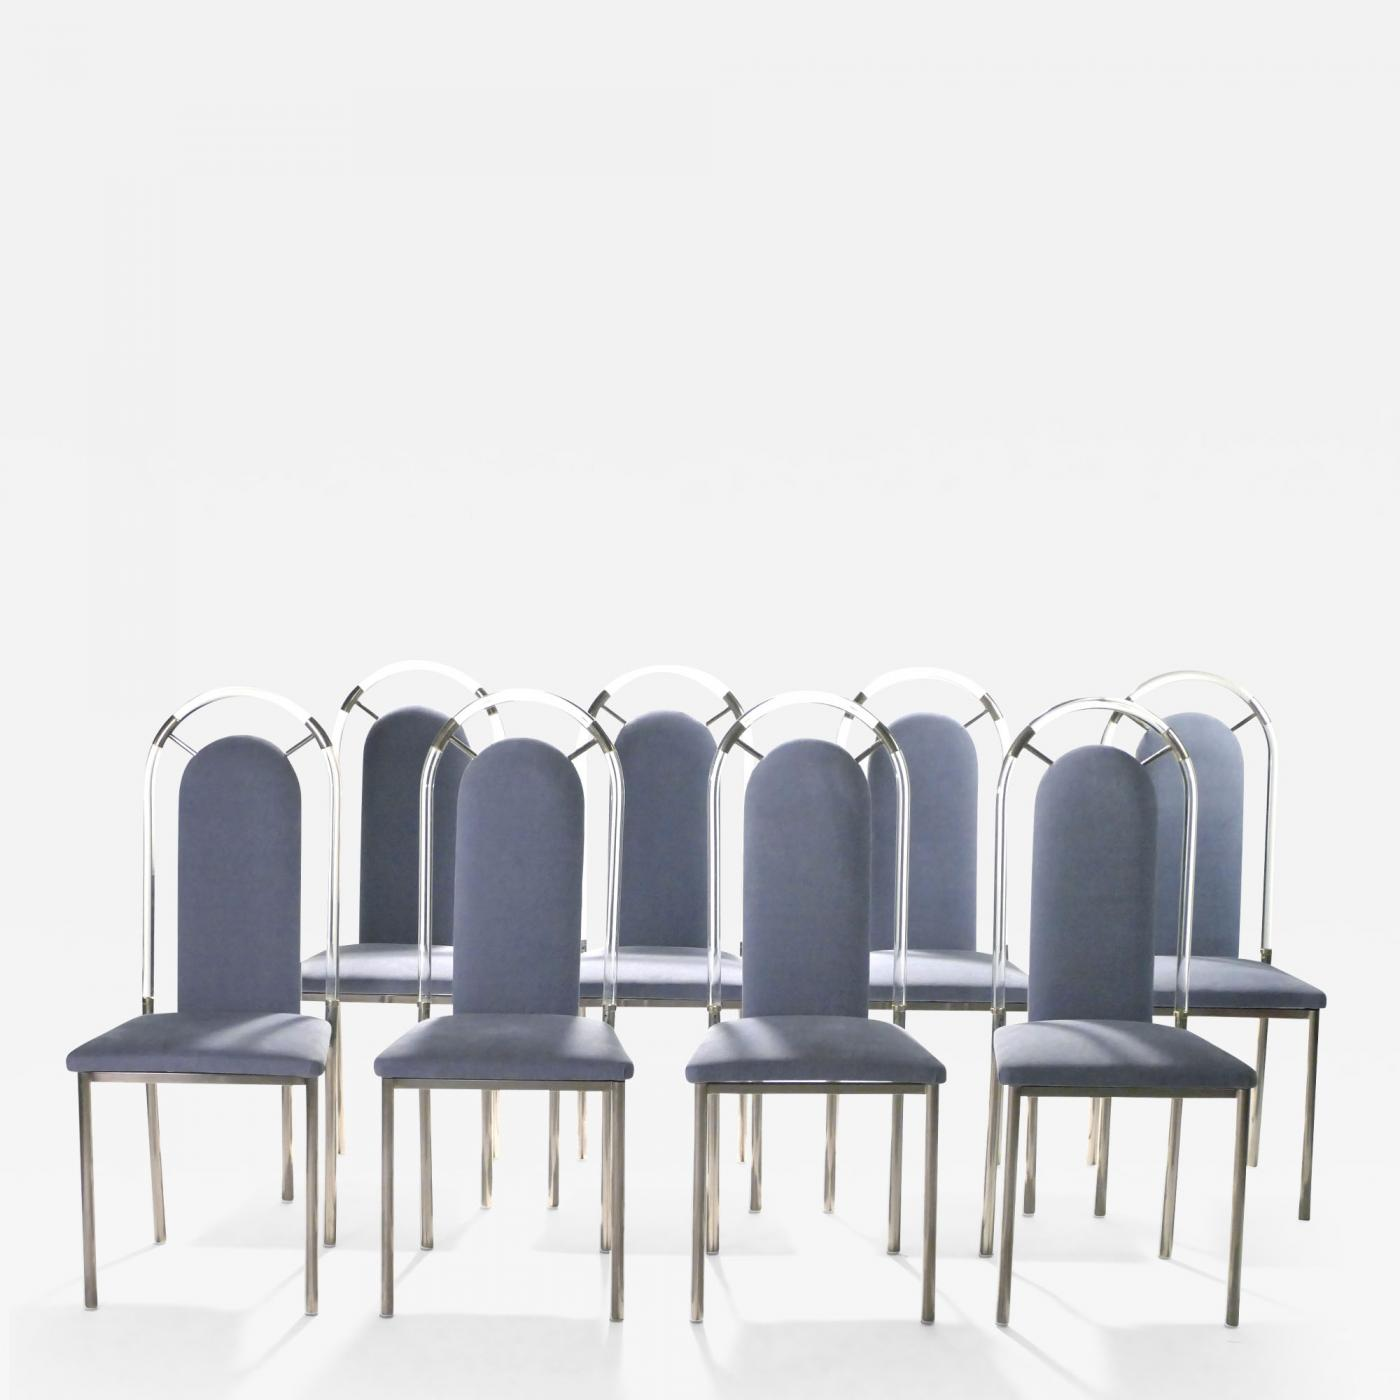 Plexiglass Chairs Maison Jansen Set Of Eight Chairs Plexiglass And Gunmetal By Maison Jansen 1970s